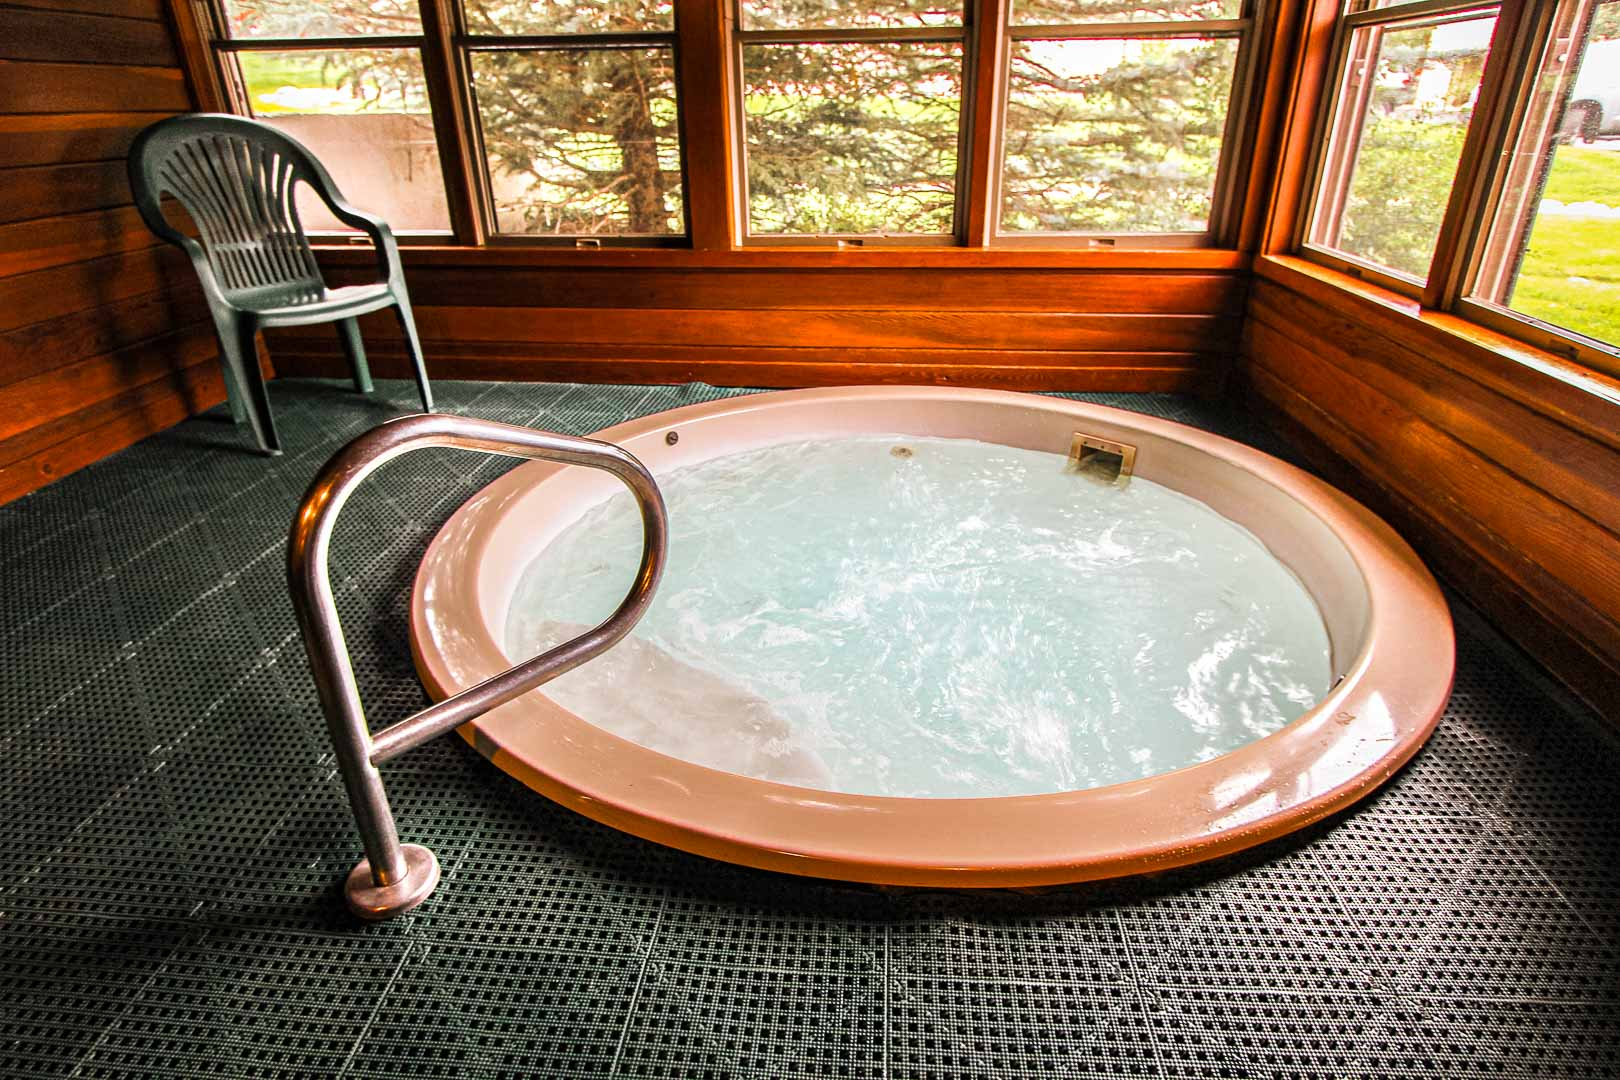 A cozy indoor Jacuzzi tub at VRI's Sunburst Resort in Steamboat Springs, Colorado.